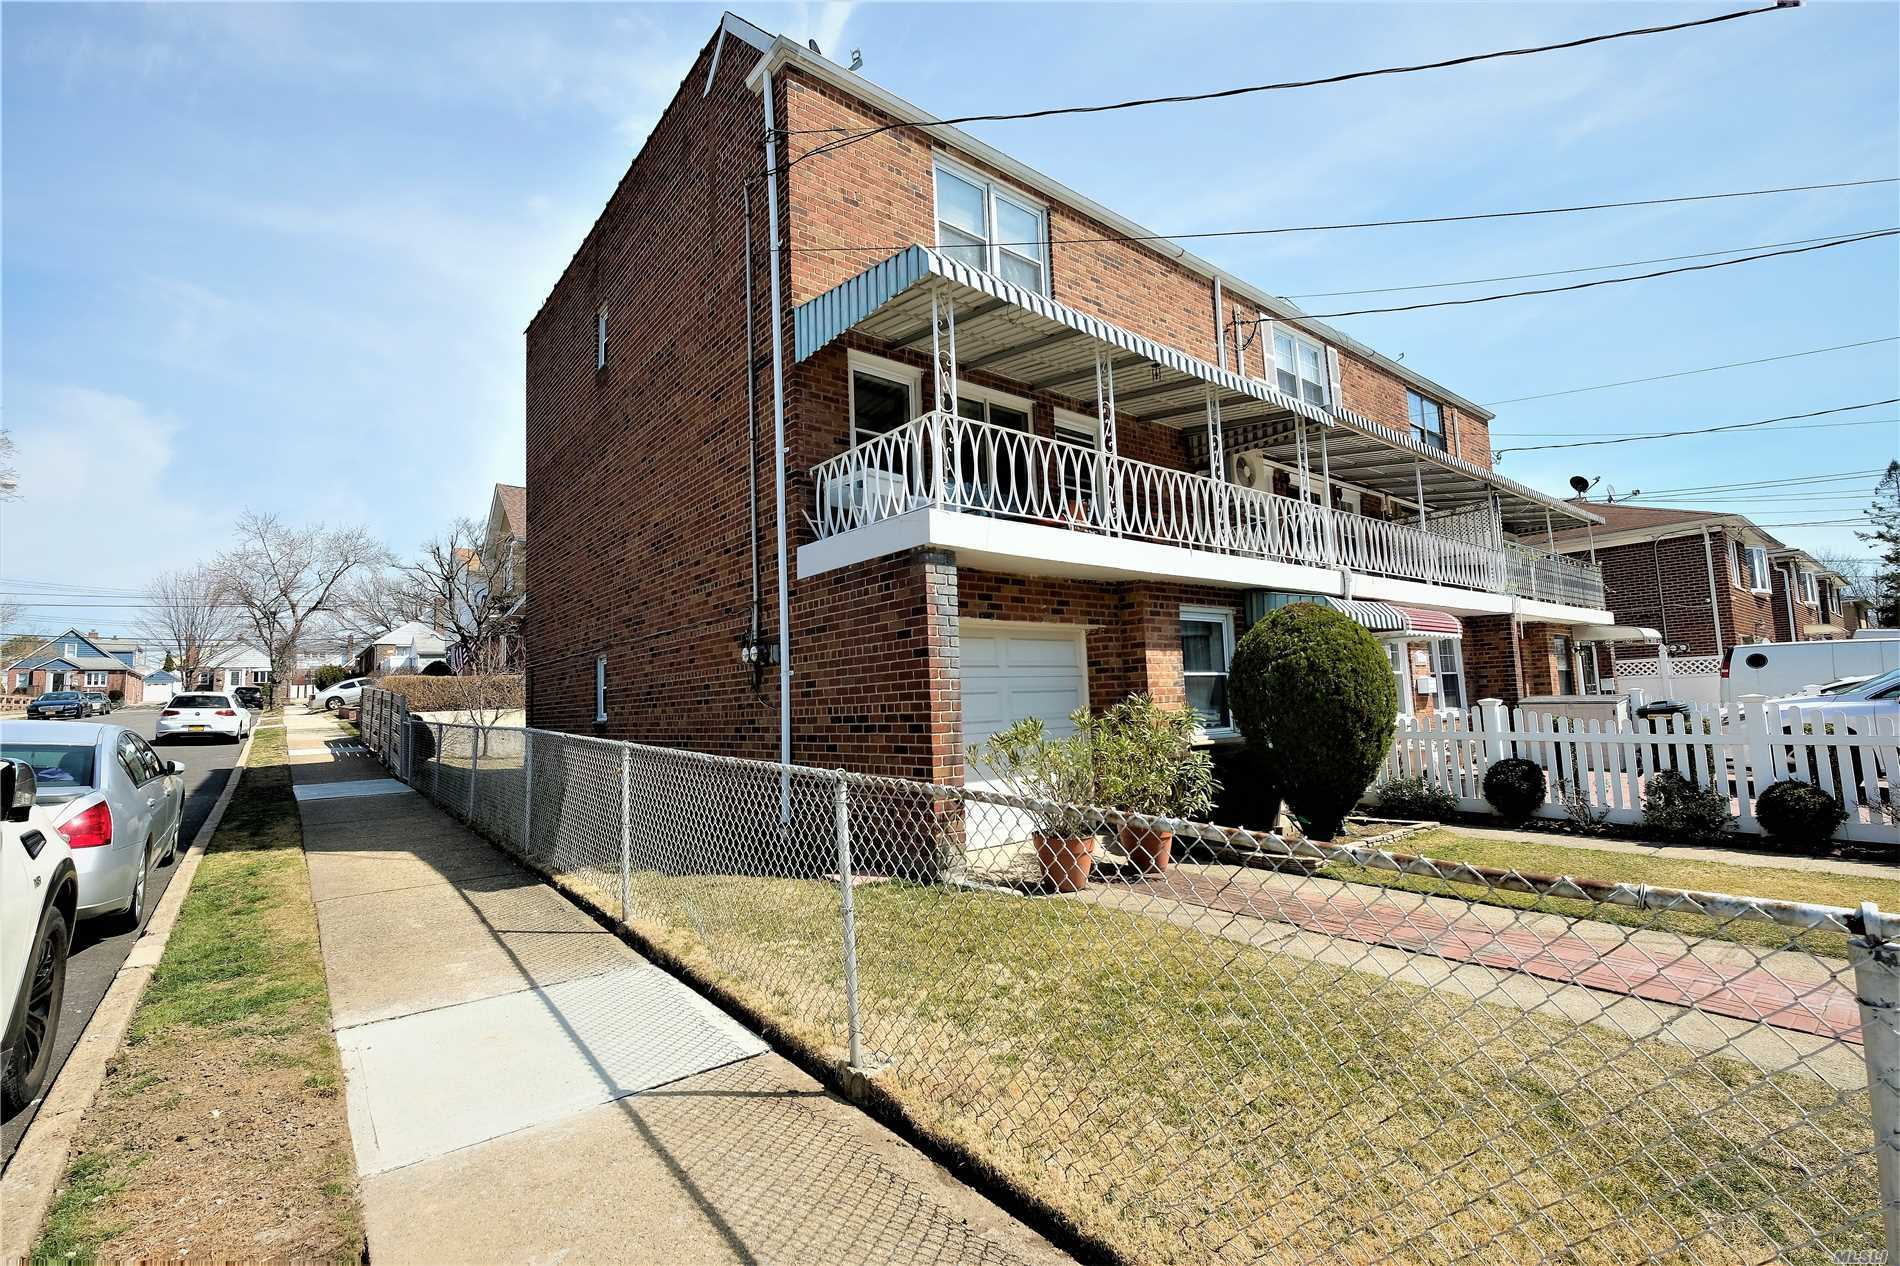 Well Kept True LEGAL 2 Family Semi-Detach Full Brick in Fresh Meadow/Flushing. South West Exposure, Income Producing 1st floor 1 bedroom w/ Eat in Kitchen (Can 2nd bedroom) . 2nd & 3rd Floor Duplex 3 bedroom Suite w/ Balcony Living room, Dining Room, Full Bathroom, 3 full sized-bedroom on 3rd floor. This is a Must See Well Kept w/ Indoor Garage & private driveway. Full Basement, Family Room & Laundry room. PS 107 & JHS 216. Buss Q31. 2 Zoned Gas heat. Rear Entrance to 2nd floor Privacy.